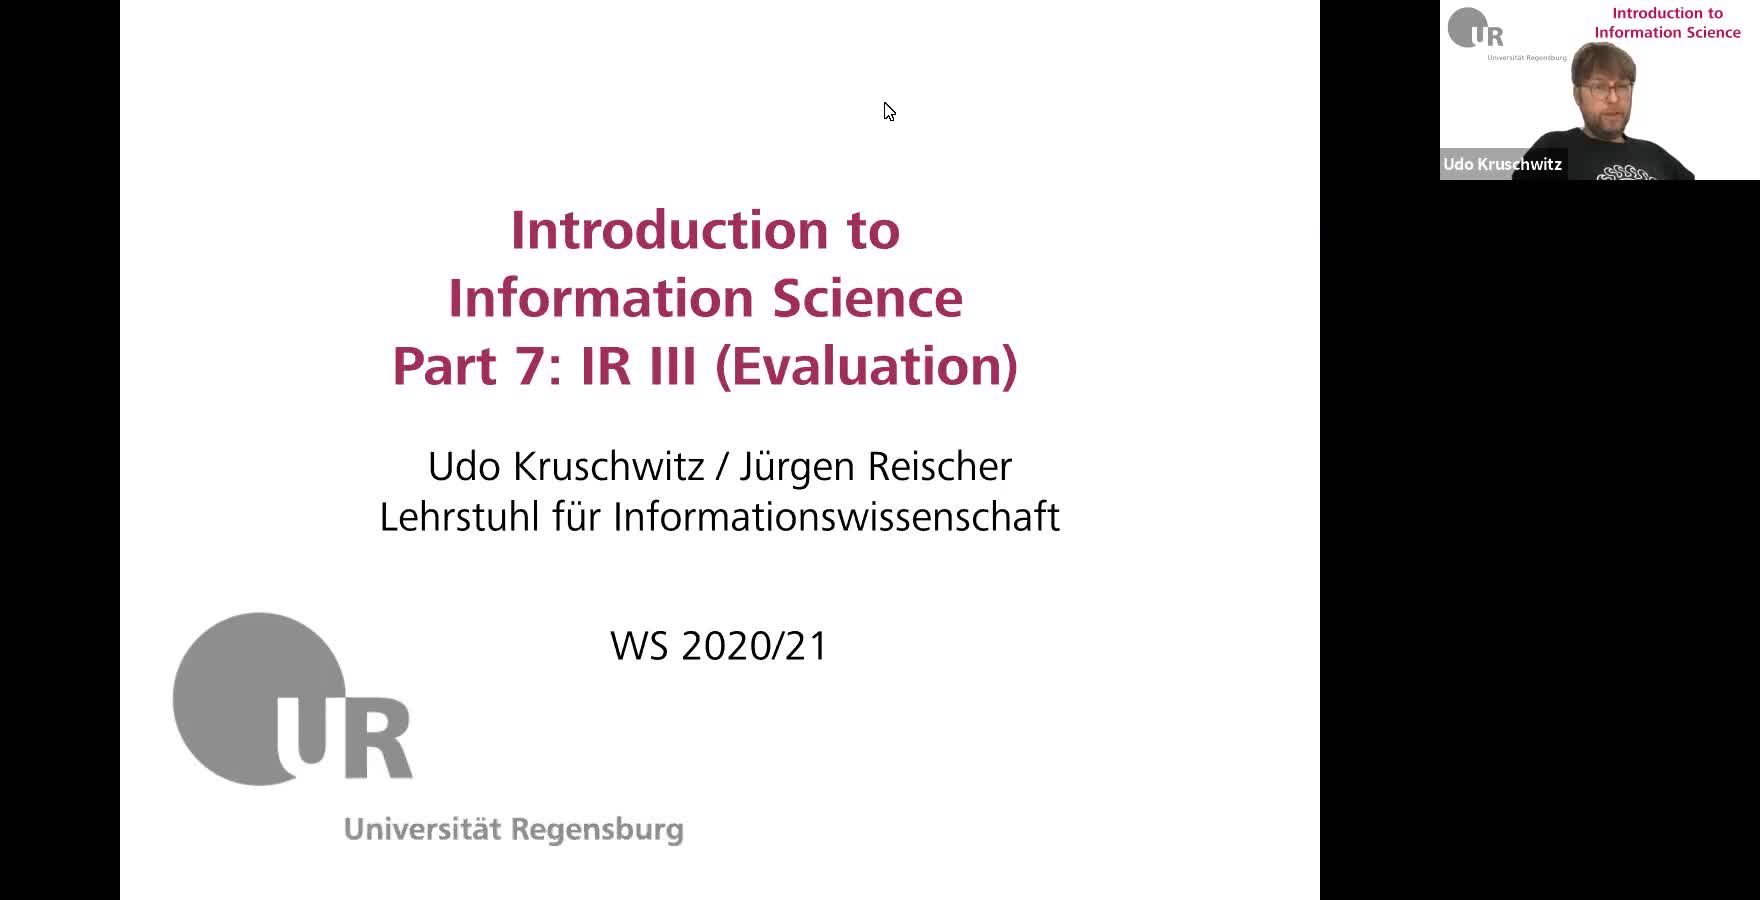 Introduction to Information Science - Lecture 11 (Information Retrieval III)